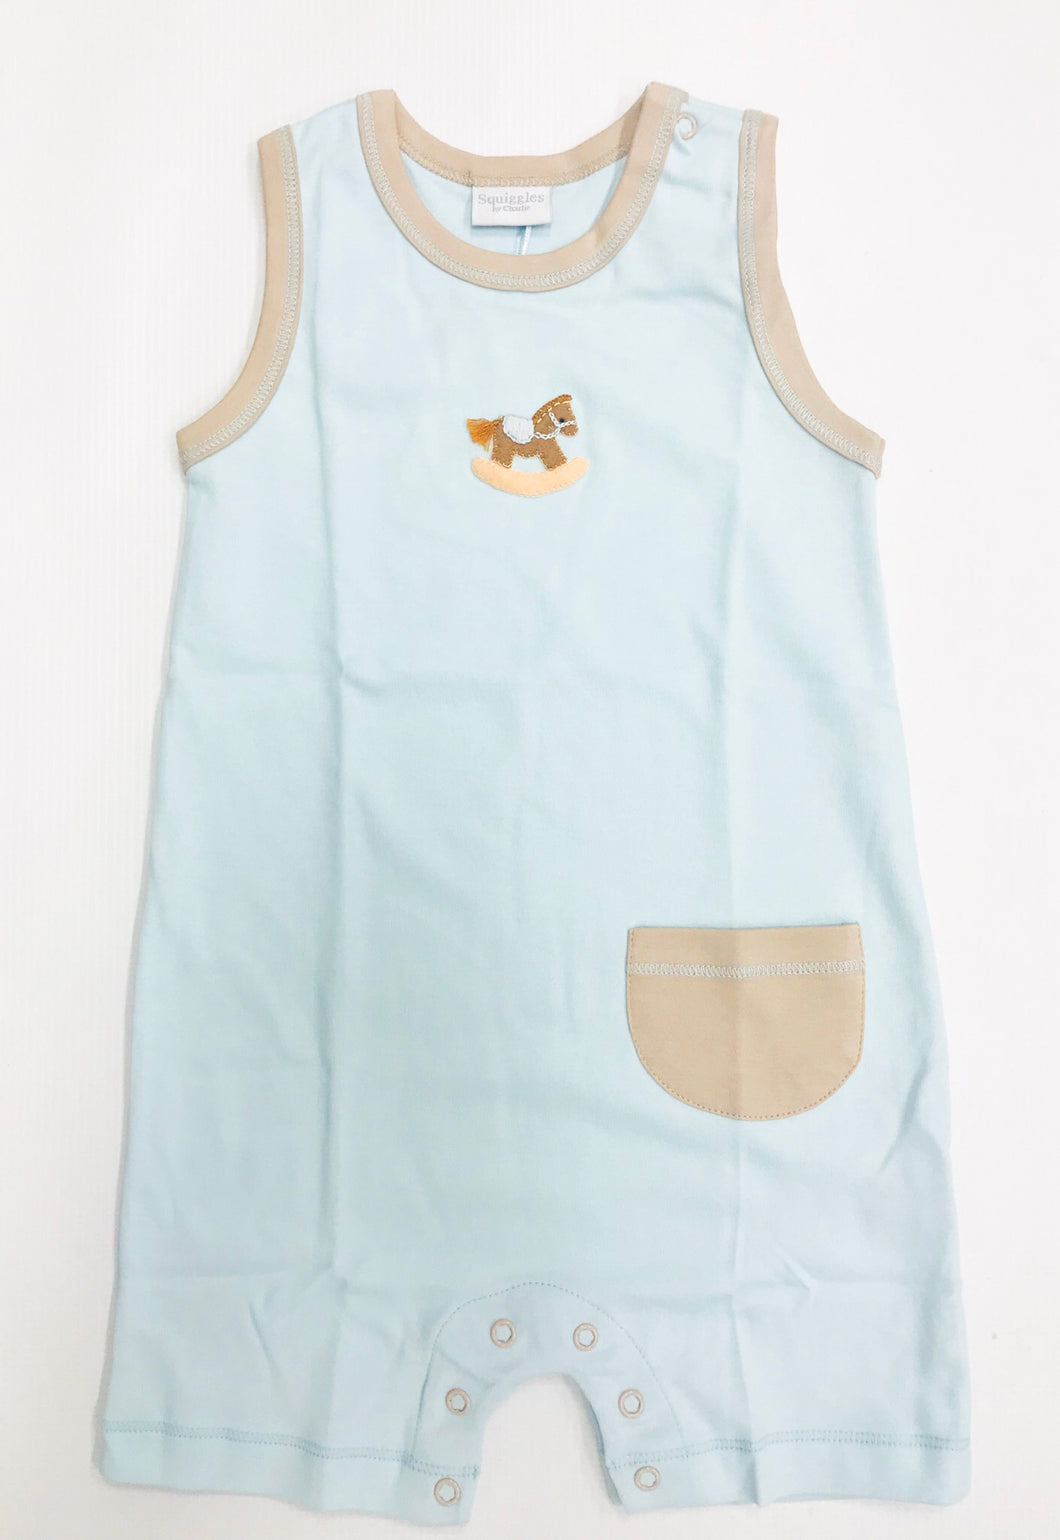 Rocking Horse Sleeveless Romper